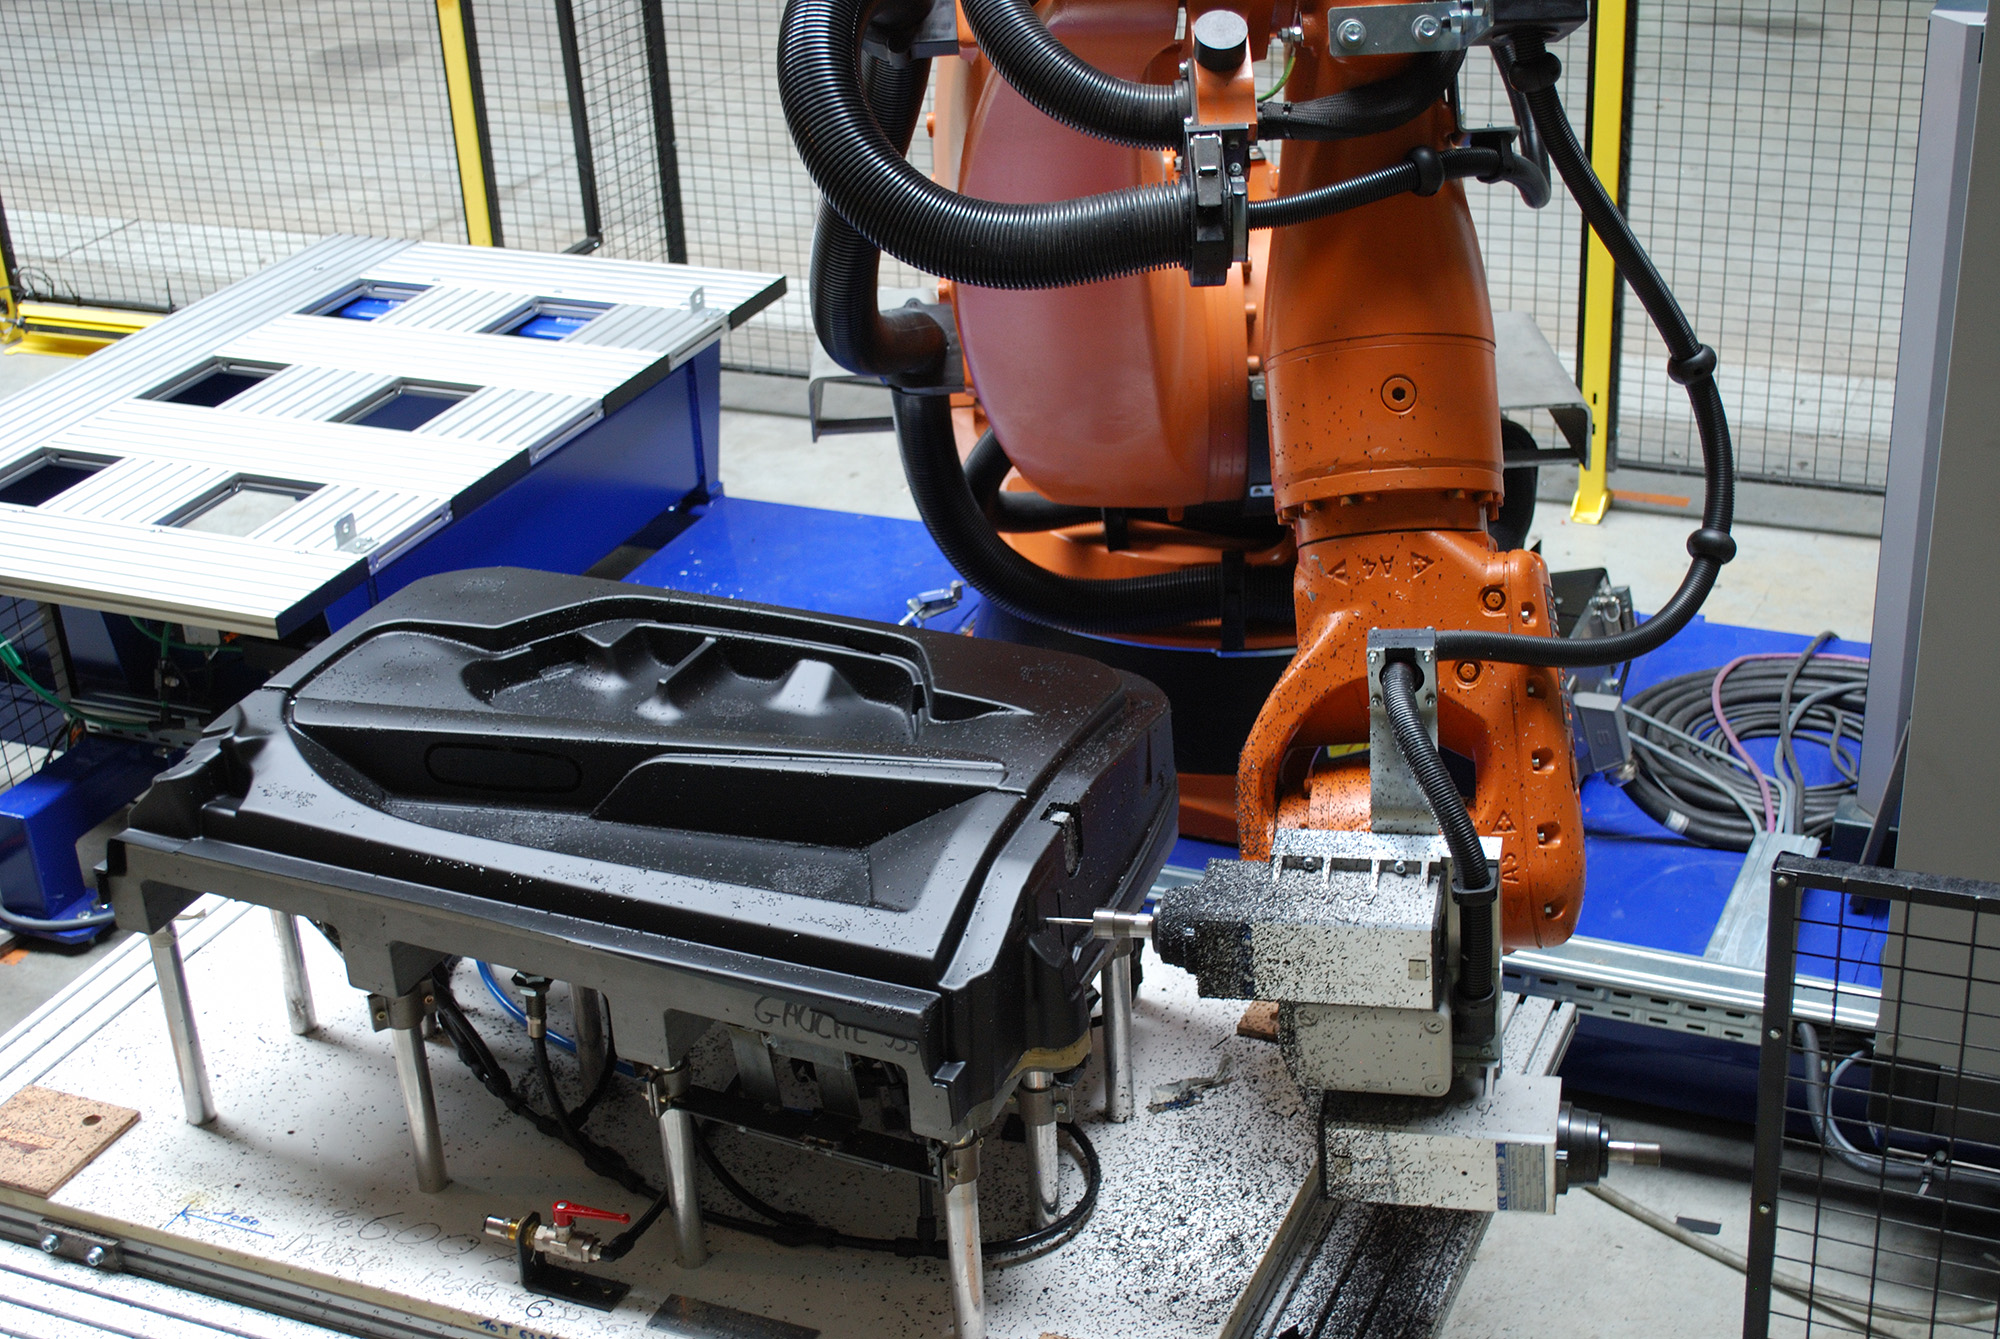 Robotic trimming composite and metal parts - GEBE2